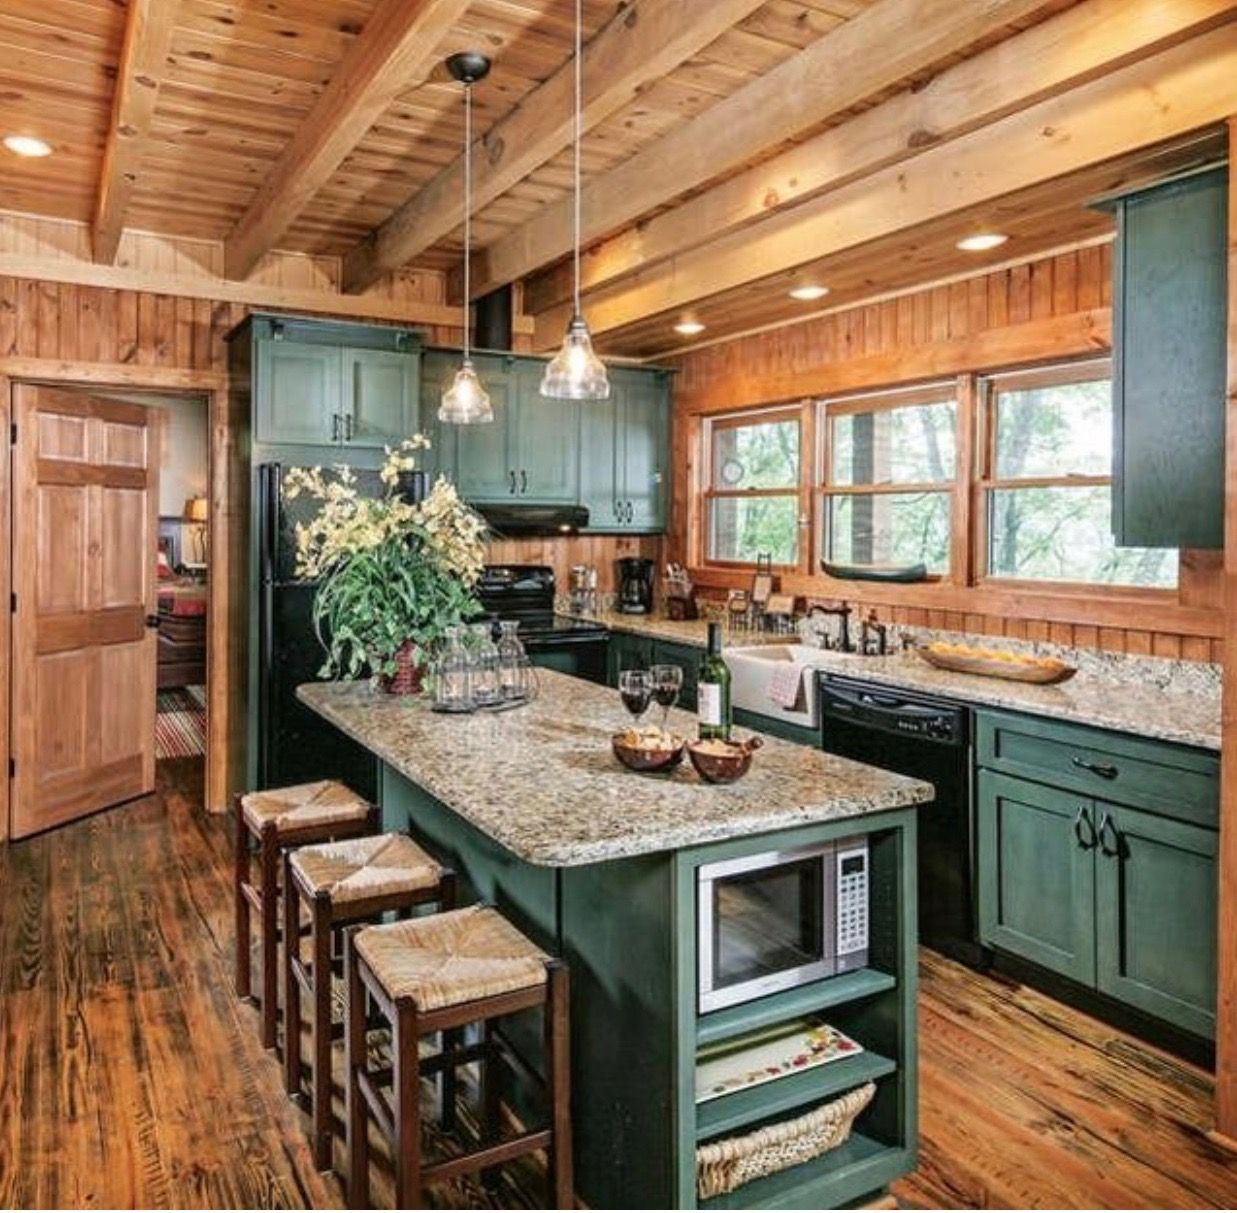 Log Home Farmhouse Kitchen Painted Cabinets Log Home Kitchens Cabin Kitchens Log Home Interiors